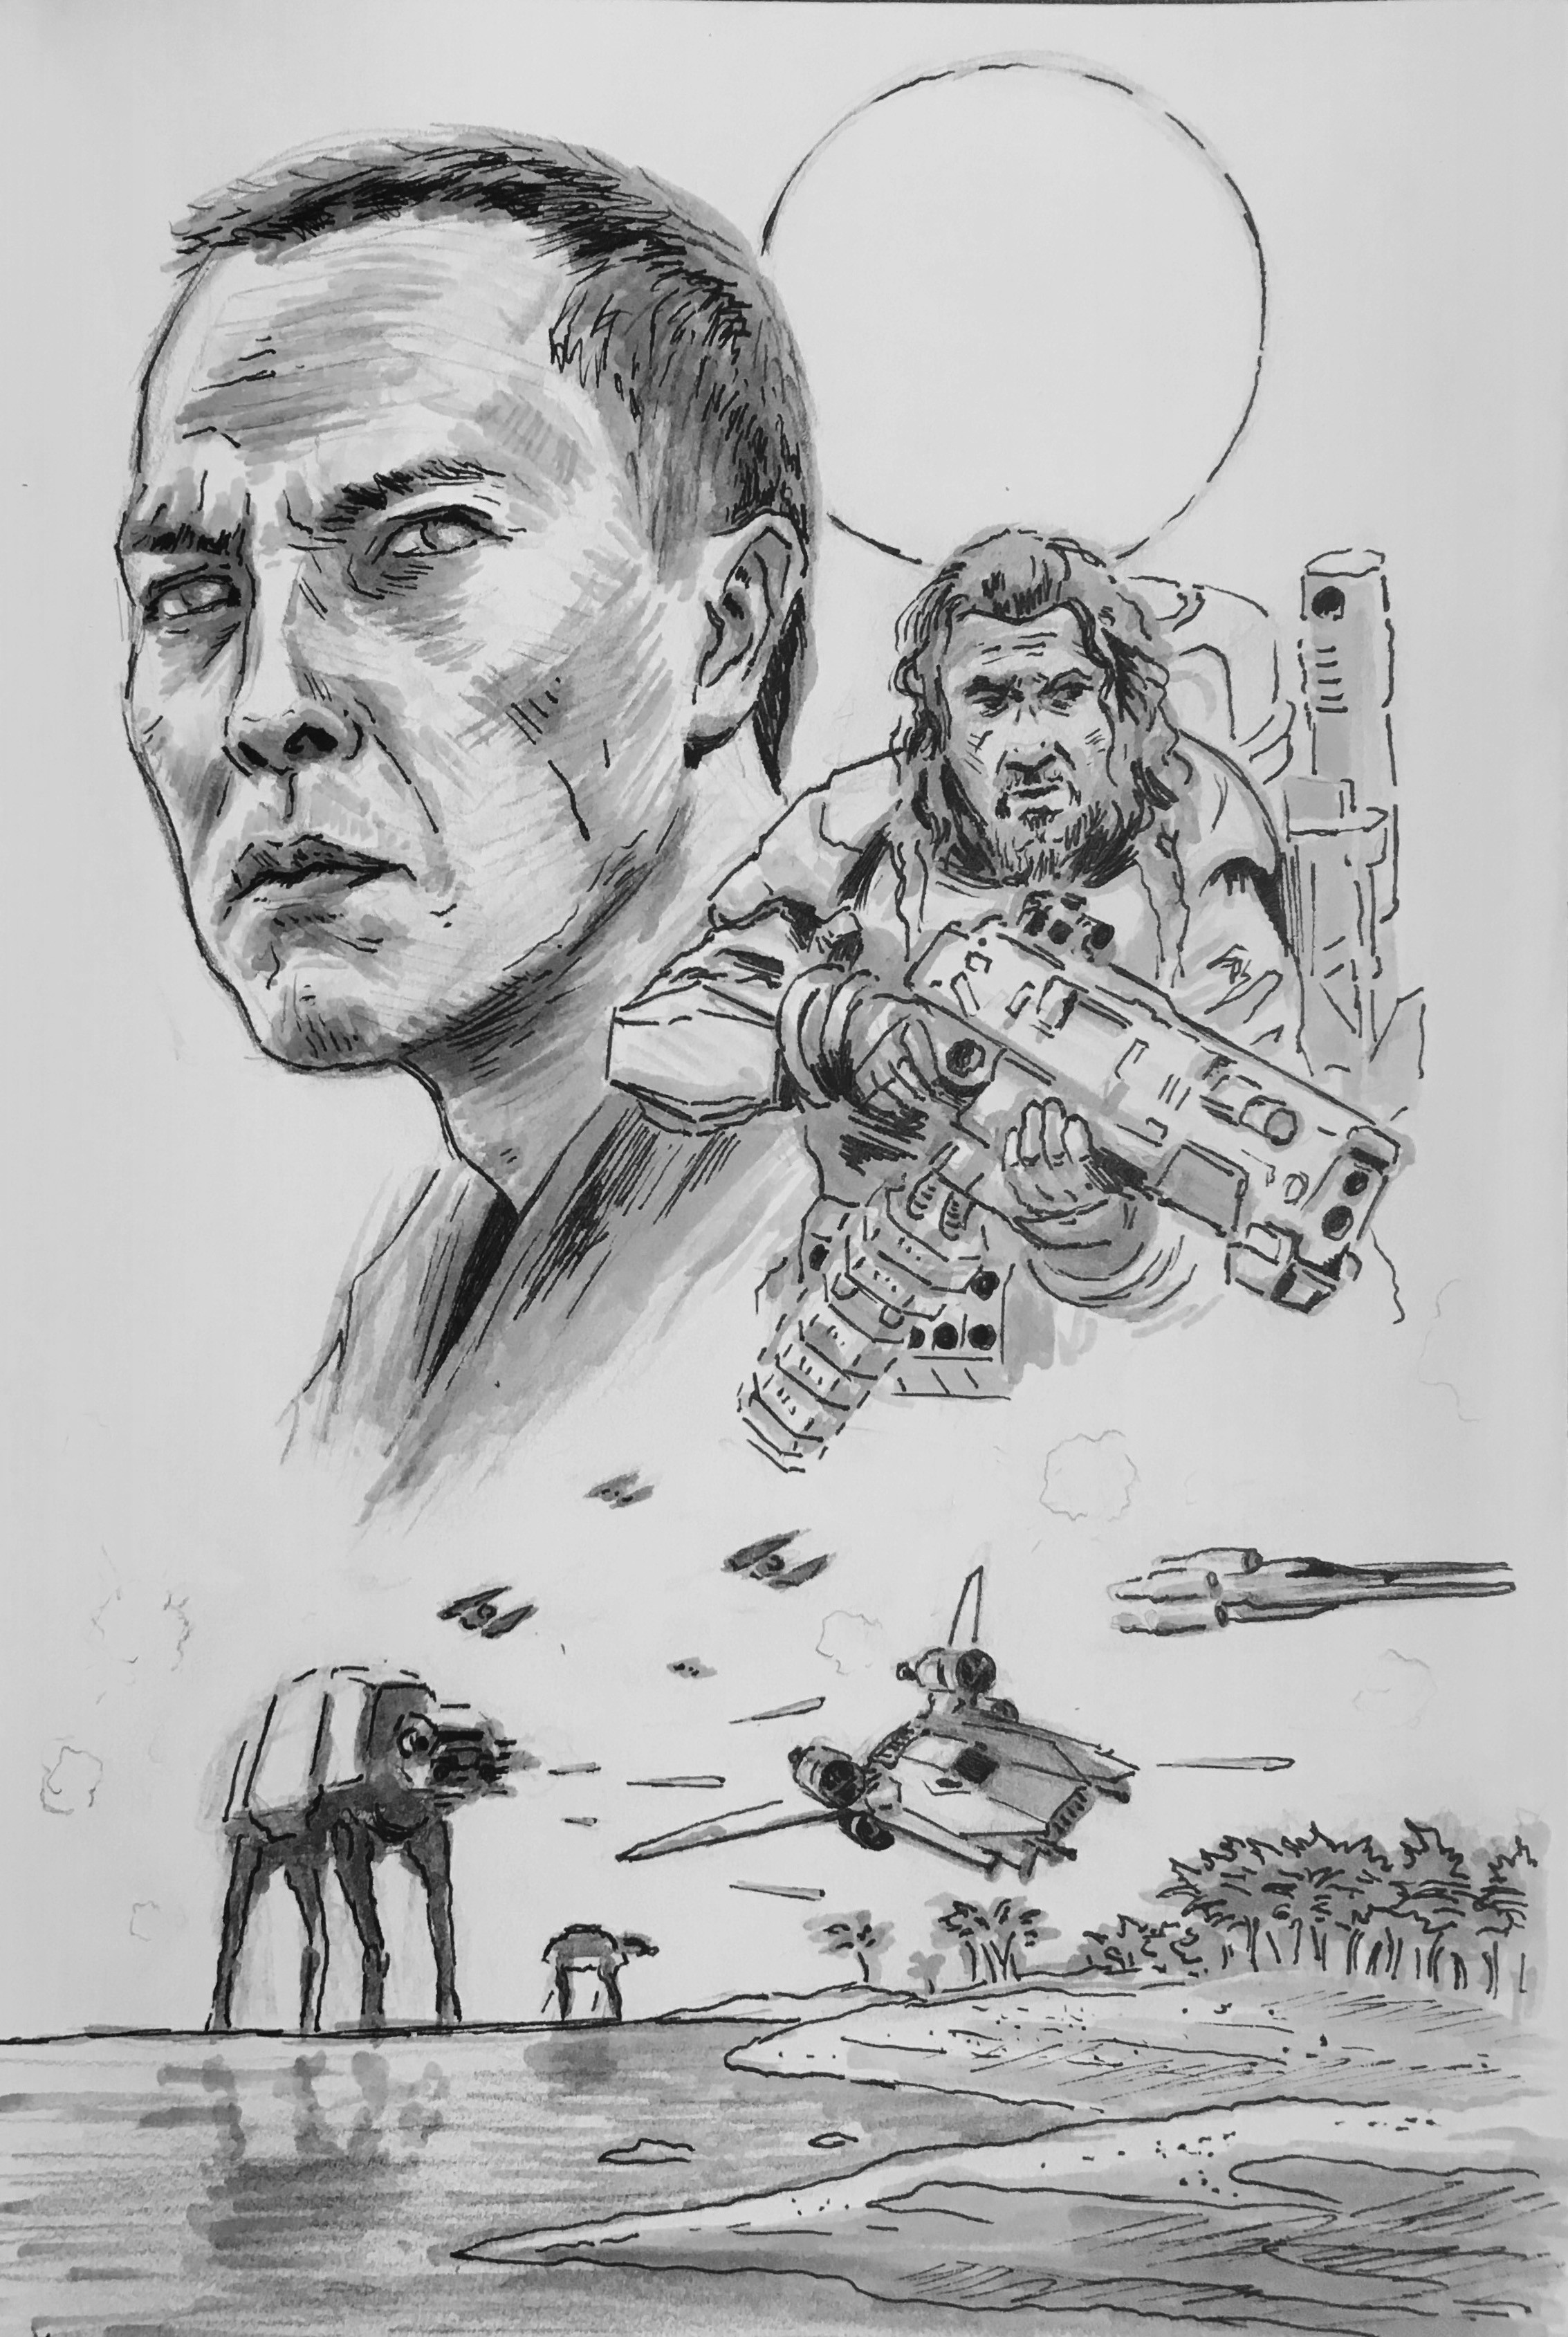 Chirrut, Baze, and the battle of Scarif. Prismacolor markers and ink. Convention commission.